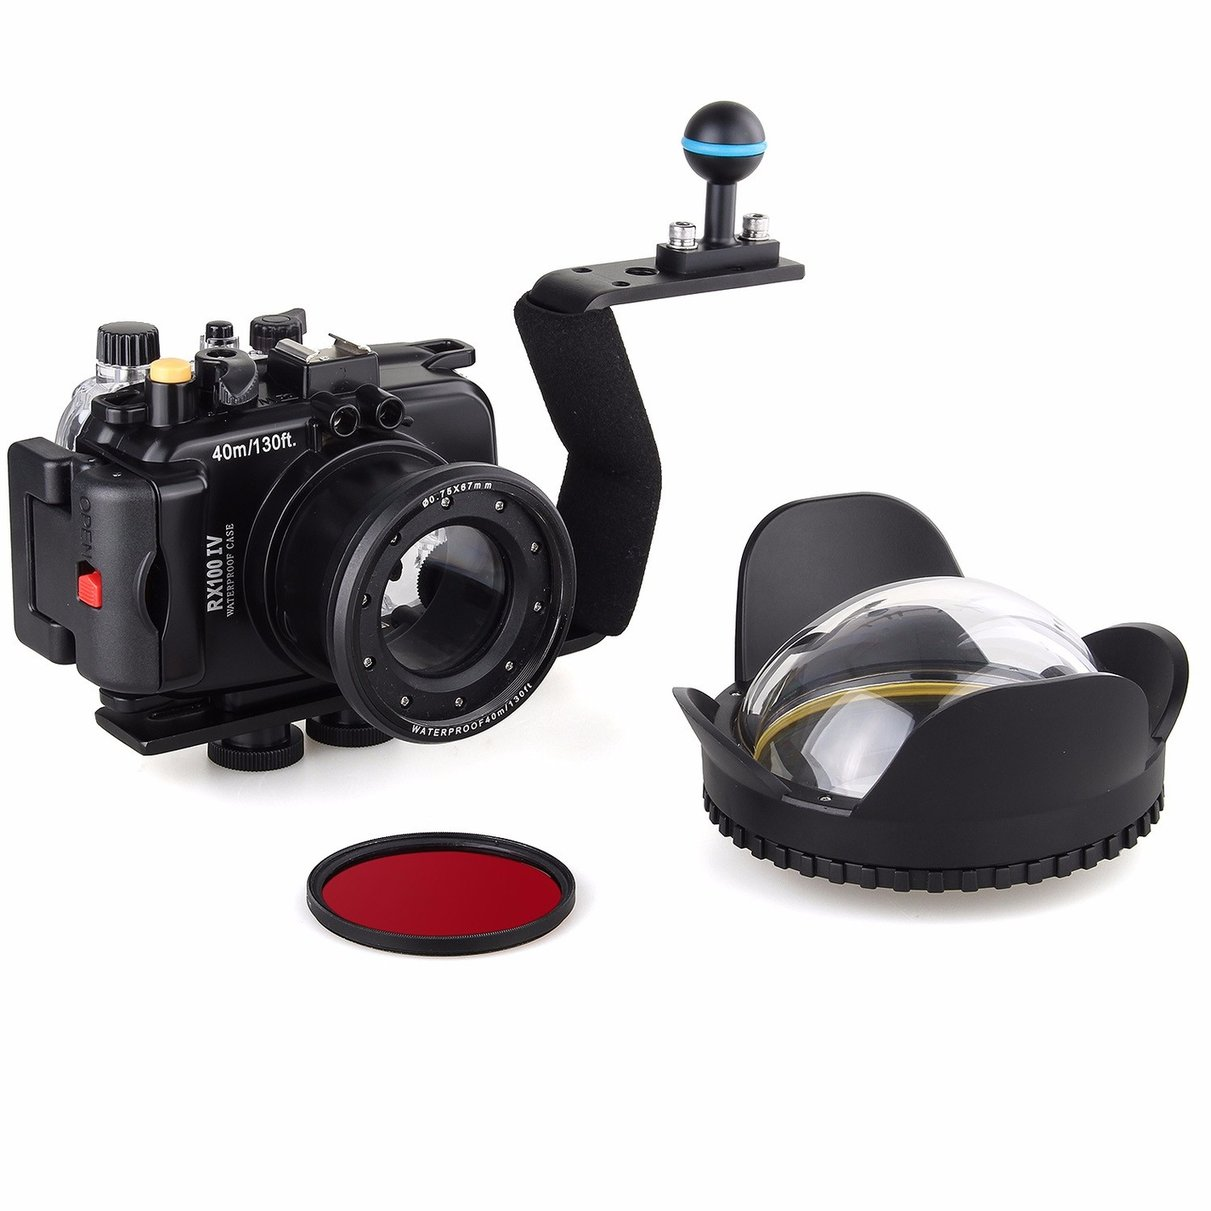 40M/130f Underwater Waterproof Camera Housing Diving Case for Sony DSC RX100 IV + Red Filter + 67mm Fisheye Lens + Aluminium meikon underwater camera housing for sony dsc rx100 iv 40m 130ft red underwater filter wet 67mm aluminum diving handle